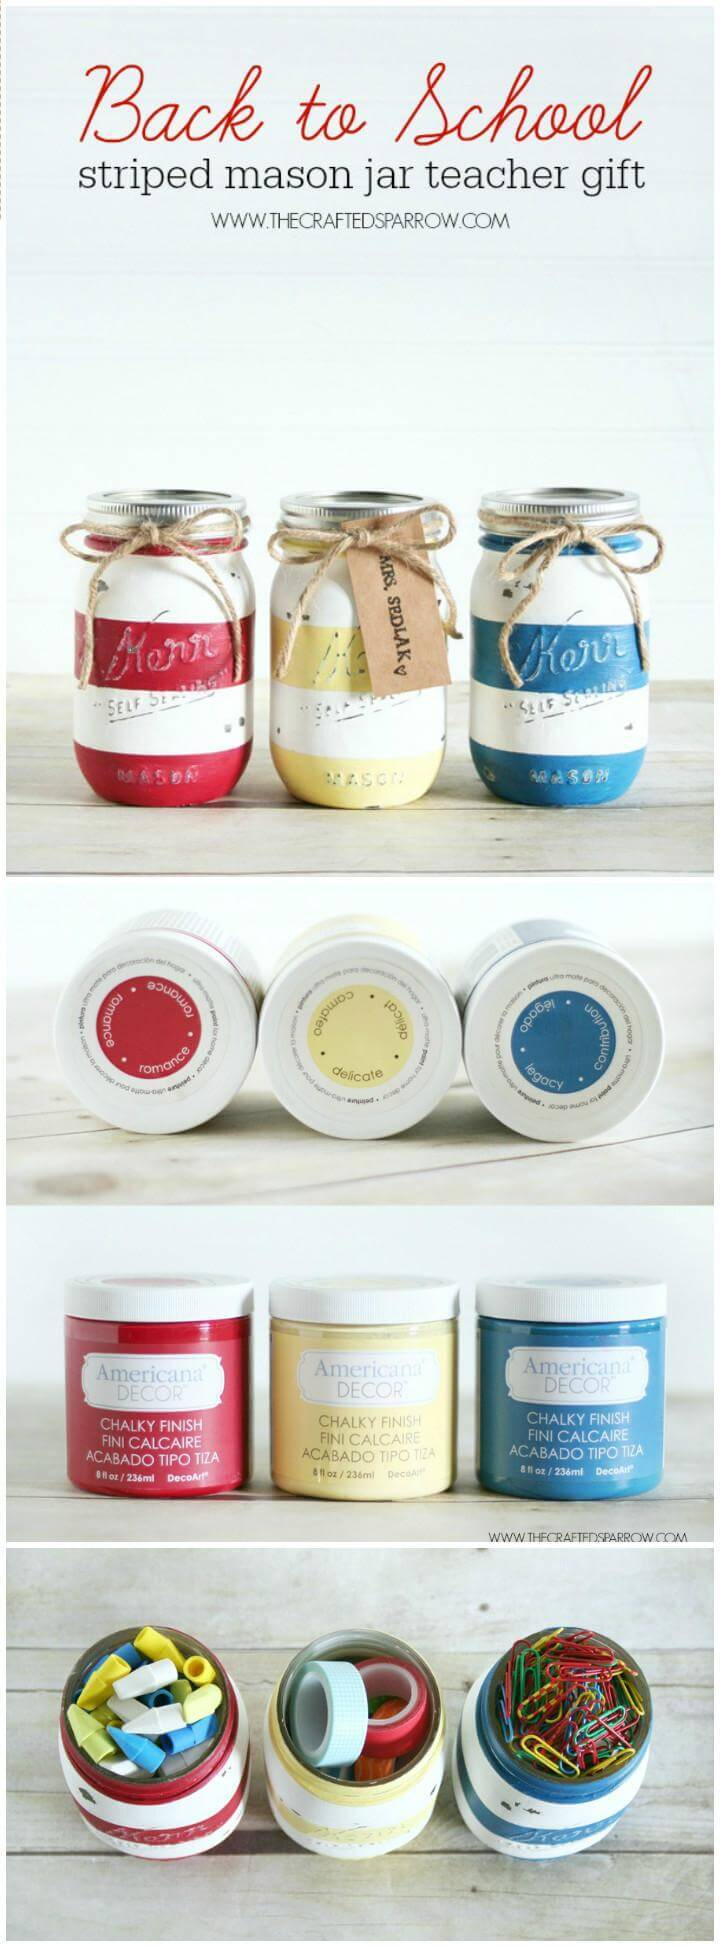 easy back-to-school striped mason jar teacher gift